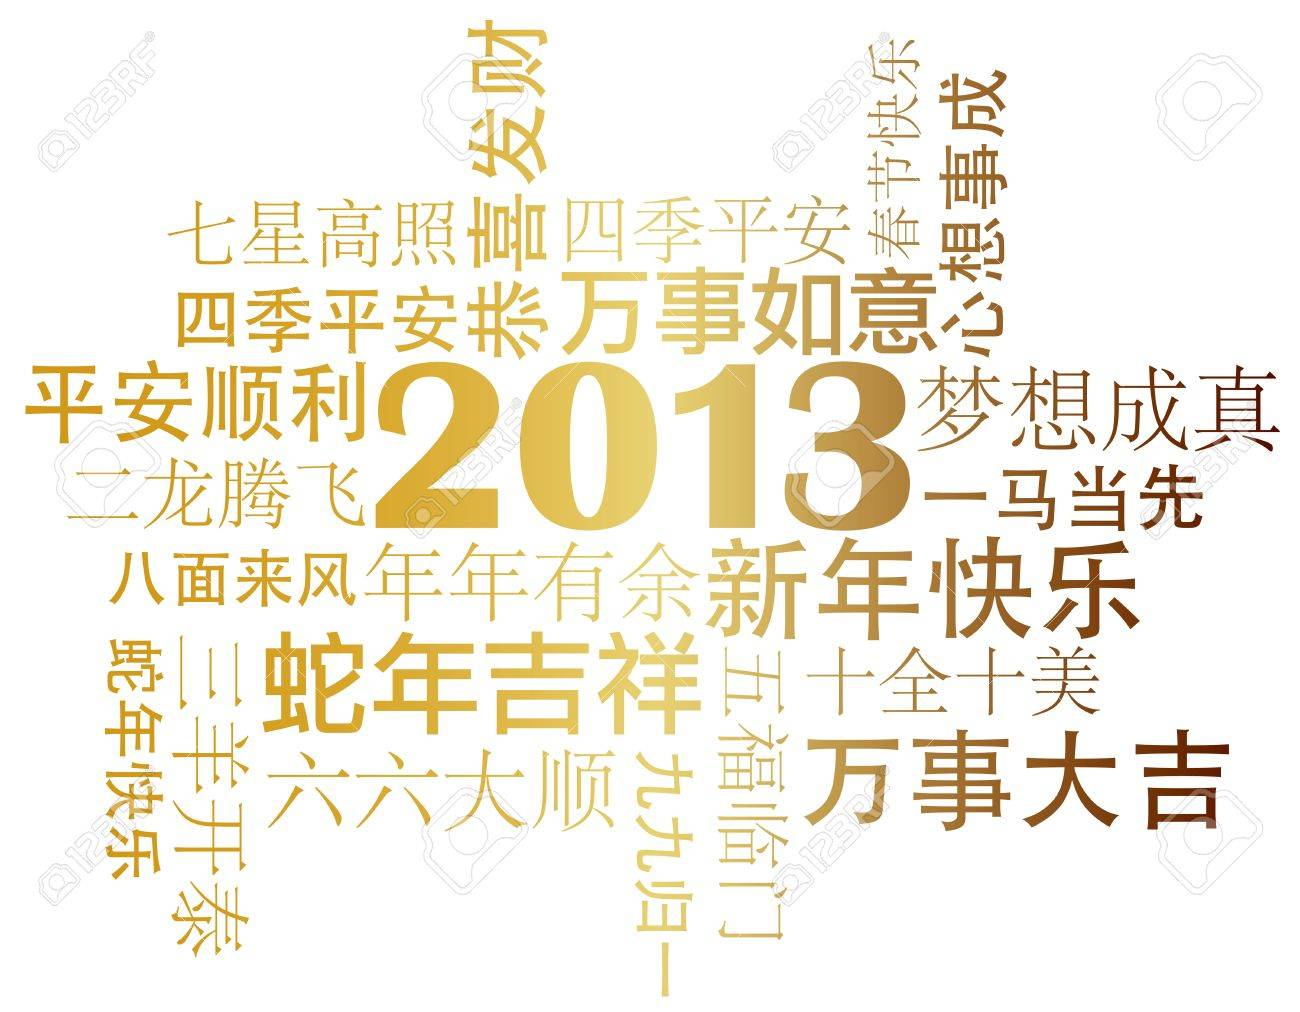 2013 Chinese Lunar New Year Greetings Text Wishing Health Good